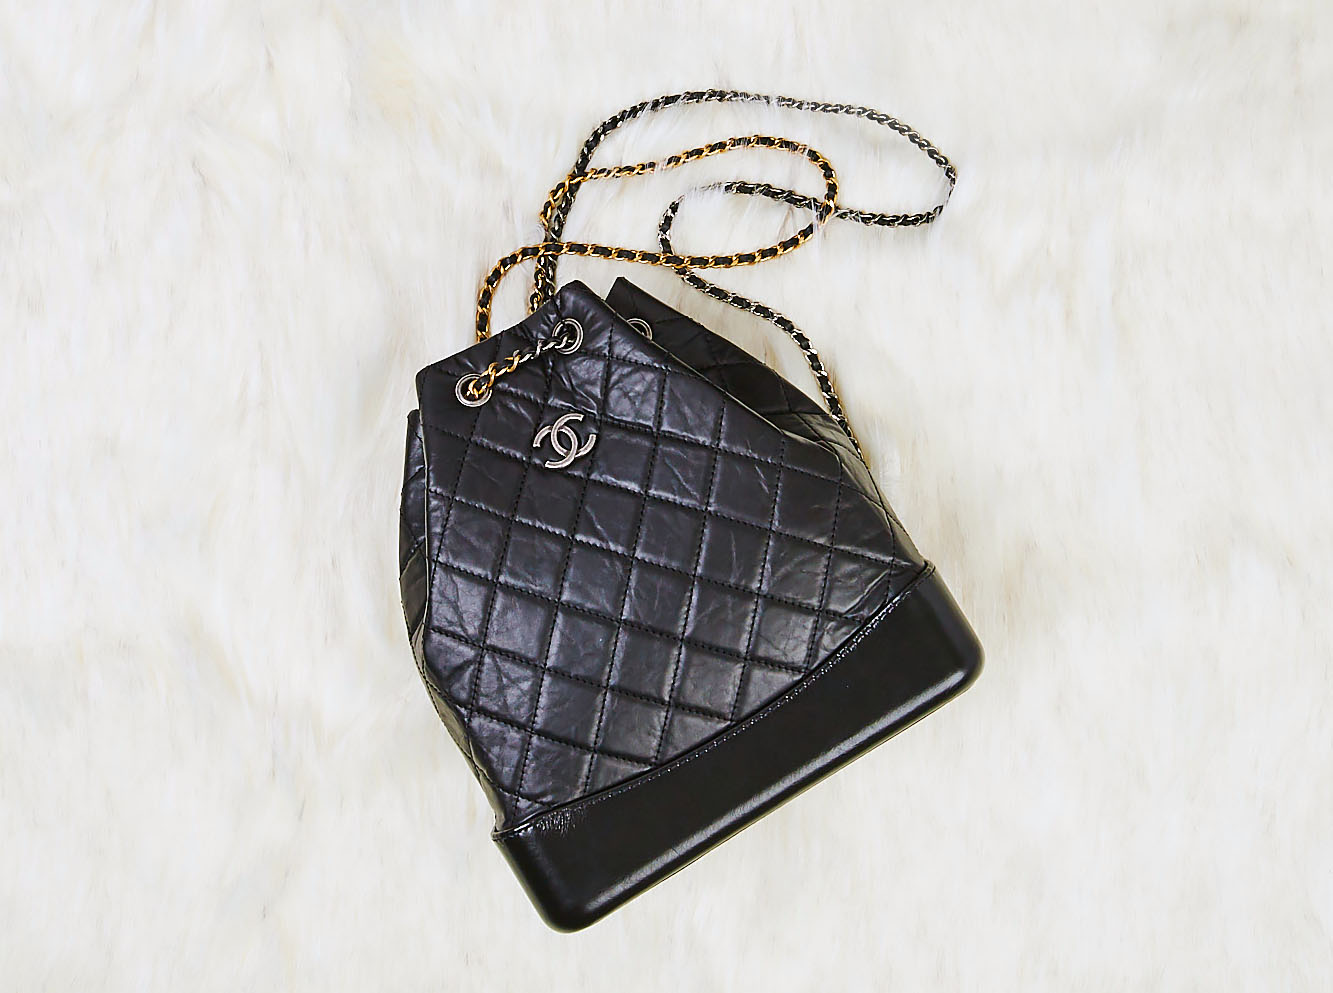 b30a73ee7006 Chanel Price Increase Coming On July 1 - Yoogi's Closet Blog